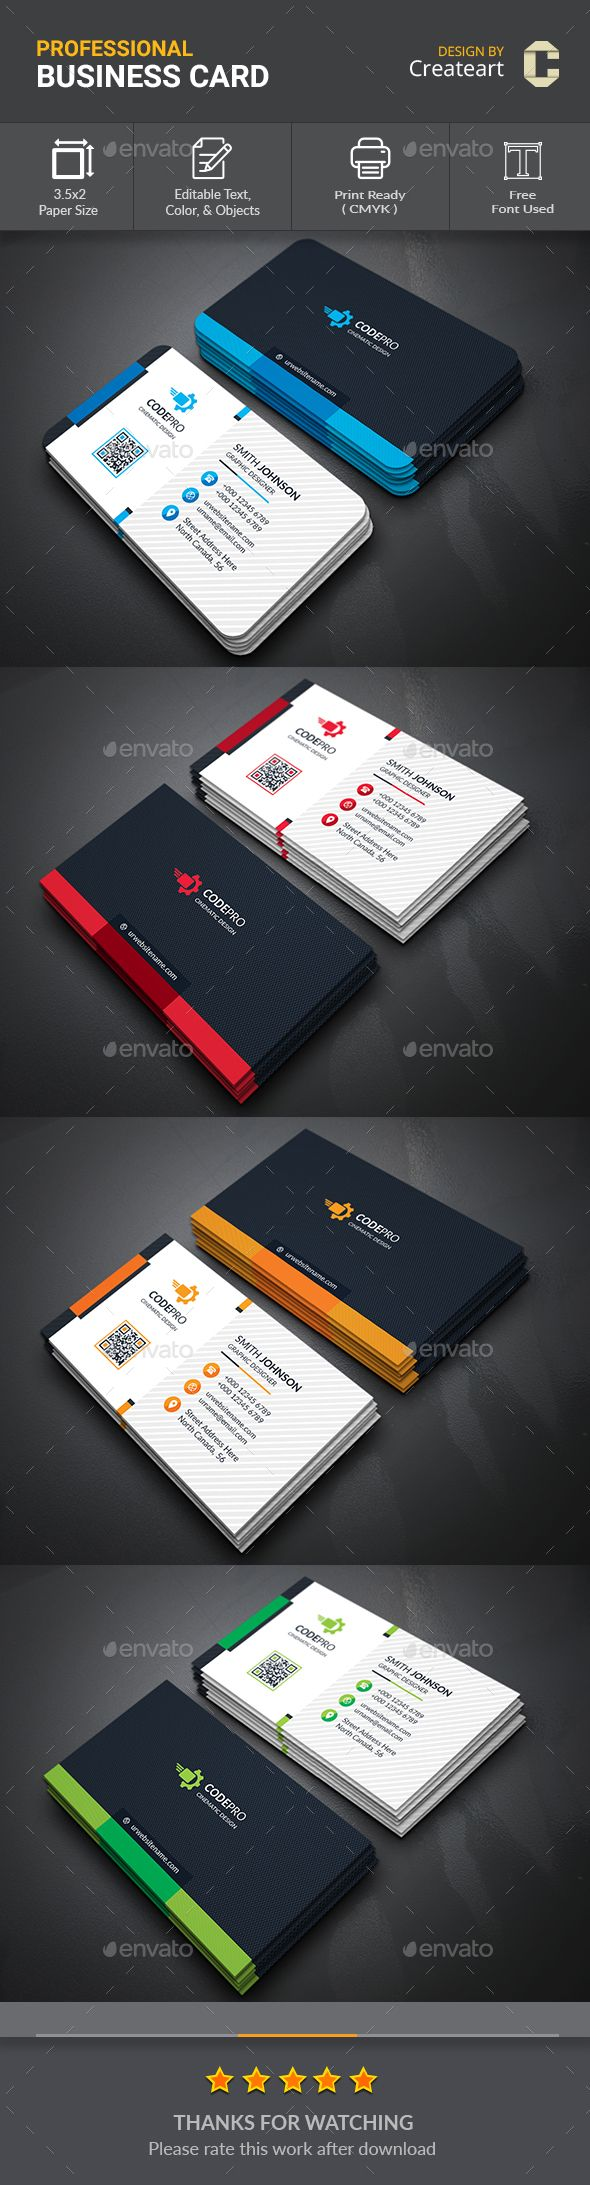 259 best business card templates designs images on pinterest this is clean business card template elegant page designs are easy to use and customize features of business card template 90 magicingreecefo Choice Image